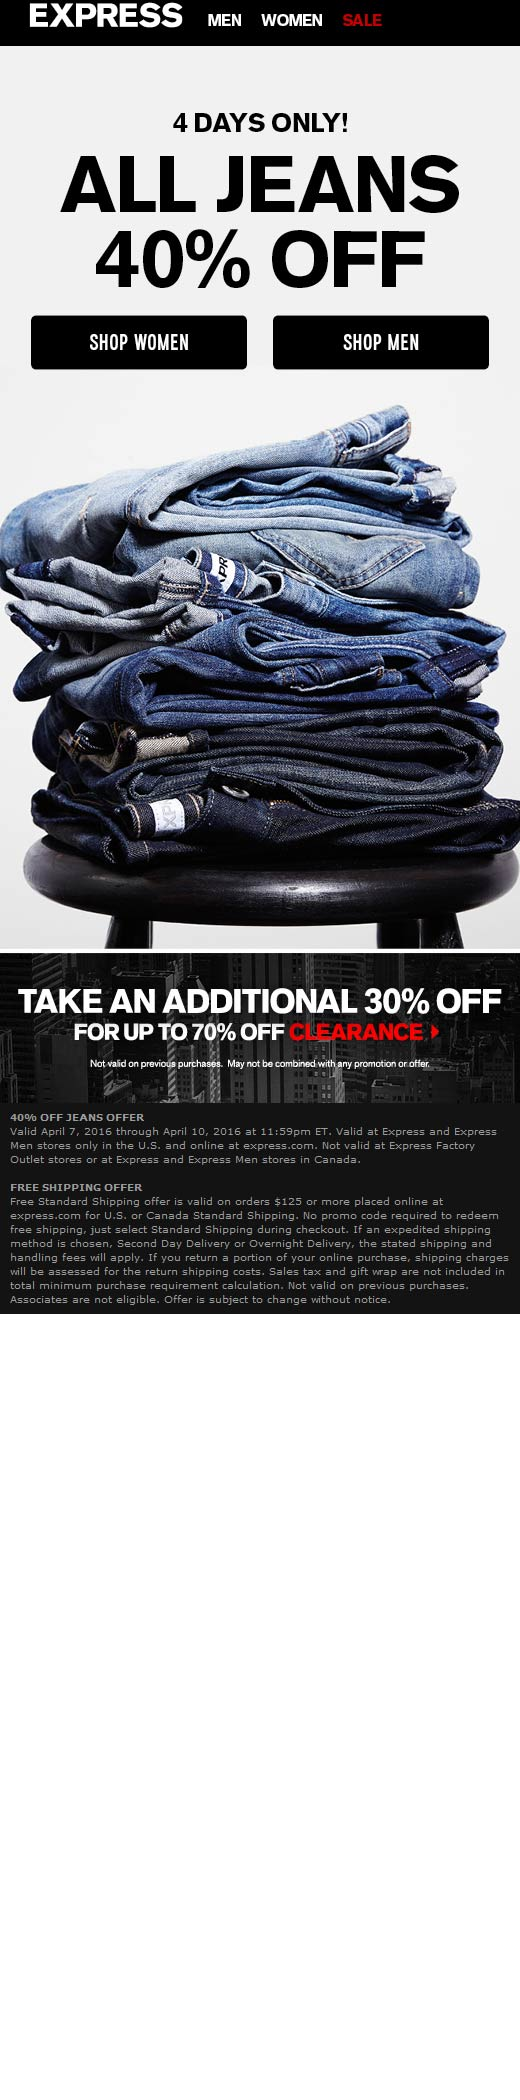 Express Coupon July 2017 40% off jeans + extra 30% off clearance at Express, ditto online